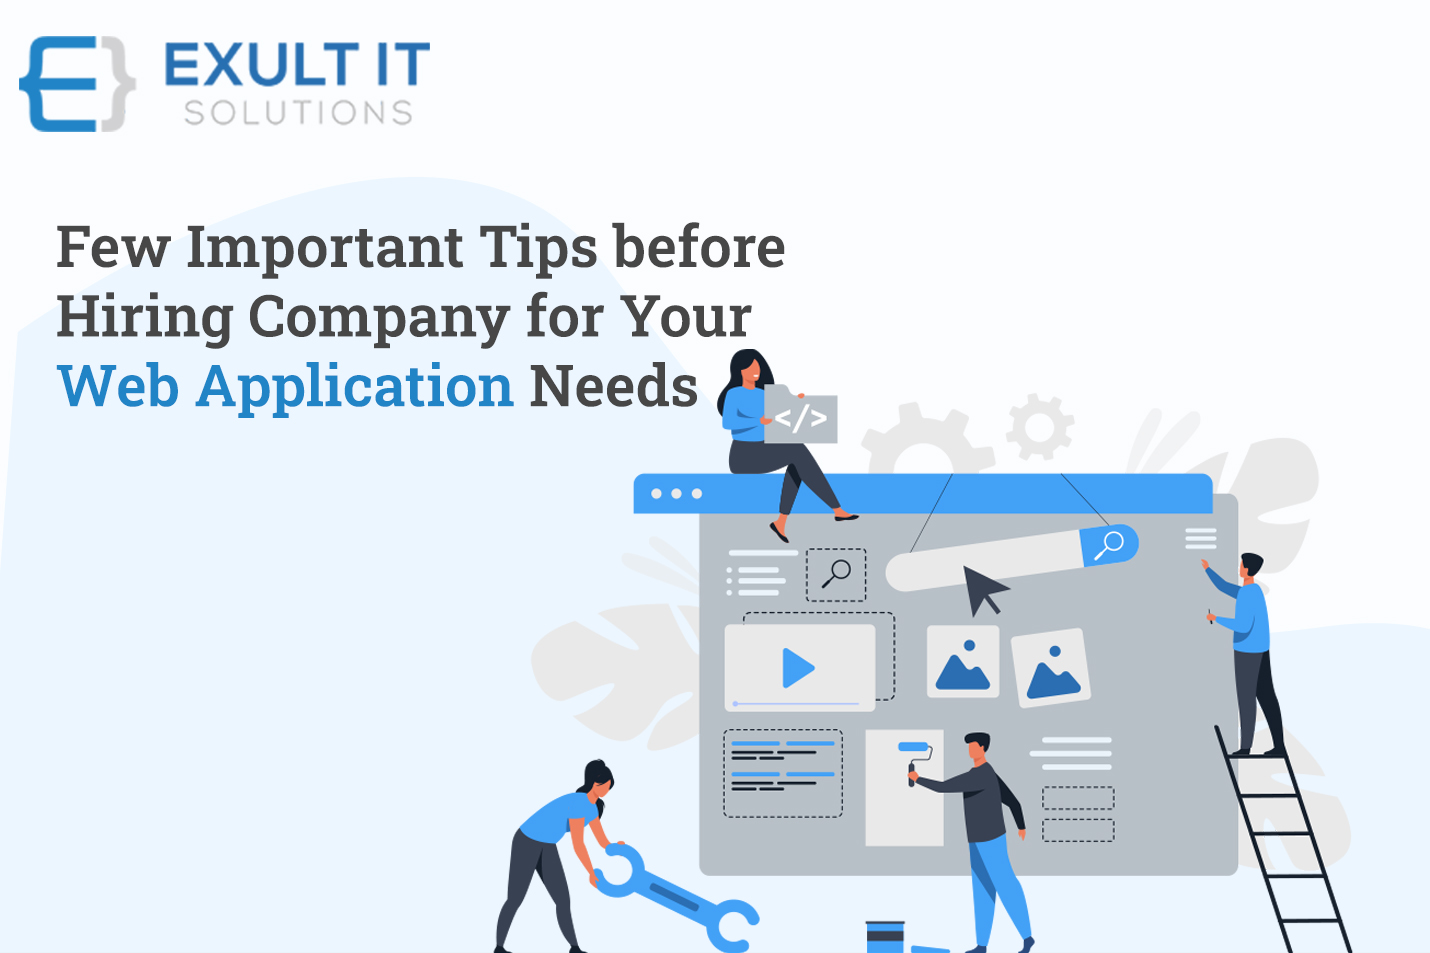 Few Important Tips before Hiring Company for Your Web Application Needs-Exult It Solutions